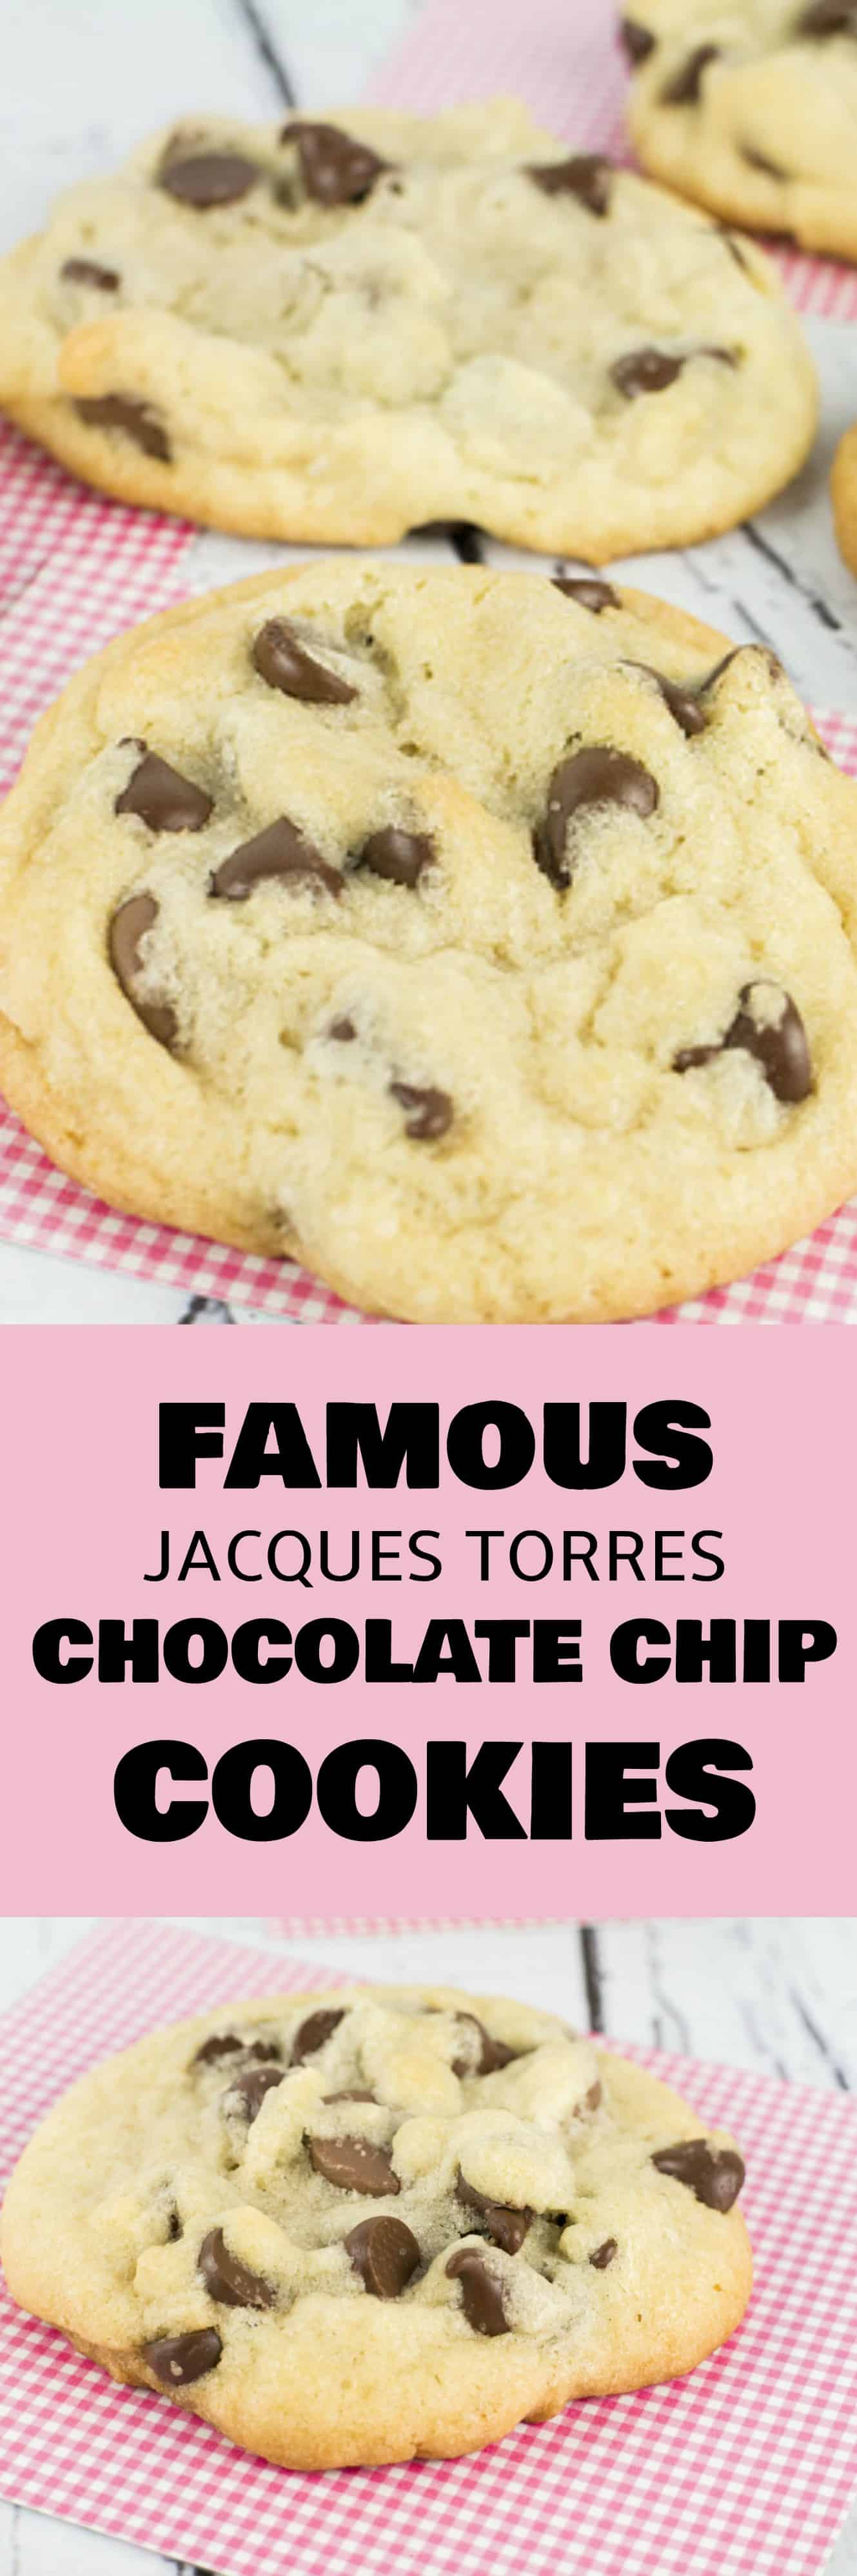 Recipe for Jacques Torres Chocolate Chip Cookies! With this easy recipe you only need to chill the dough for 30 minutes!  These are the best chocolate chip cookies ever!